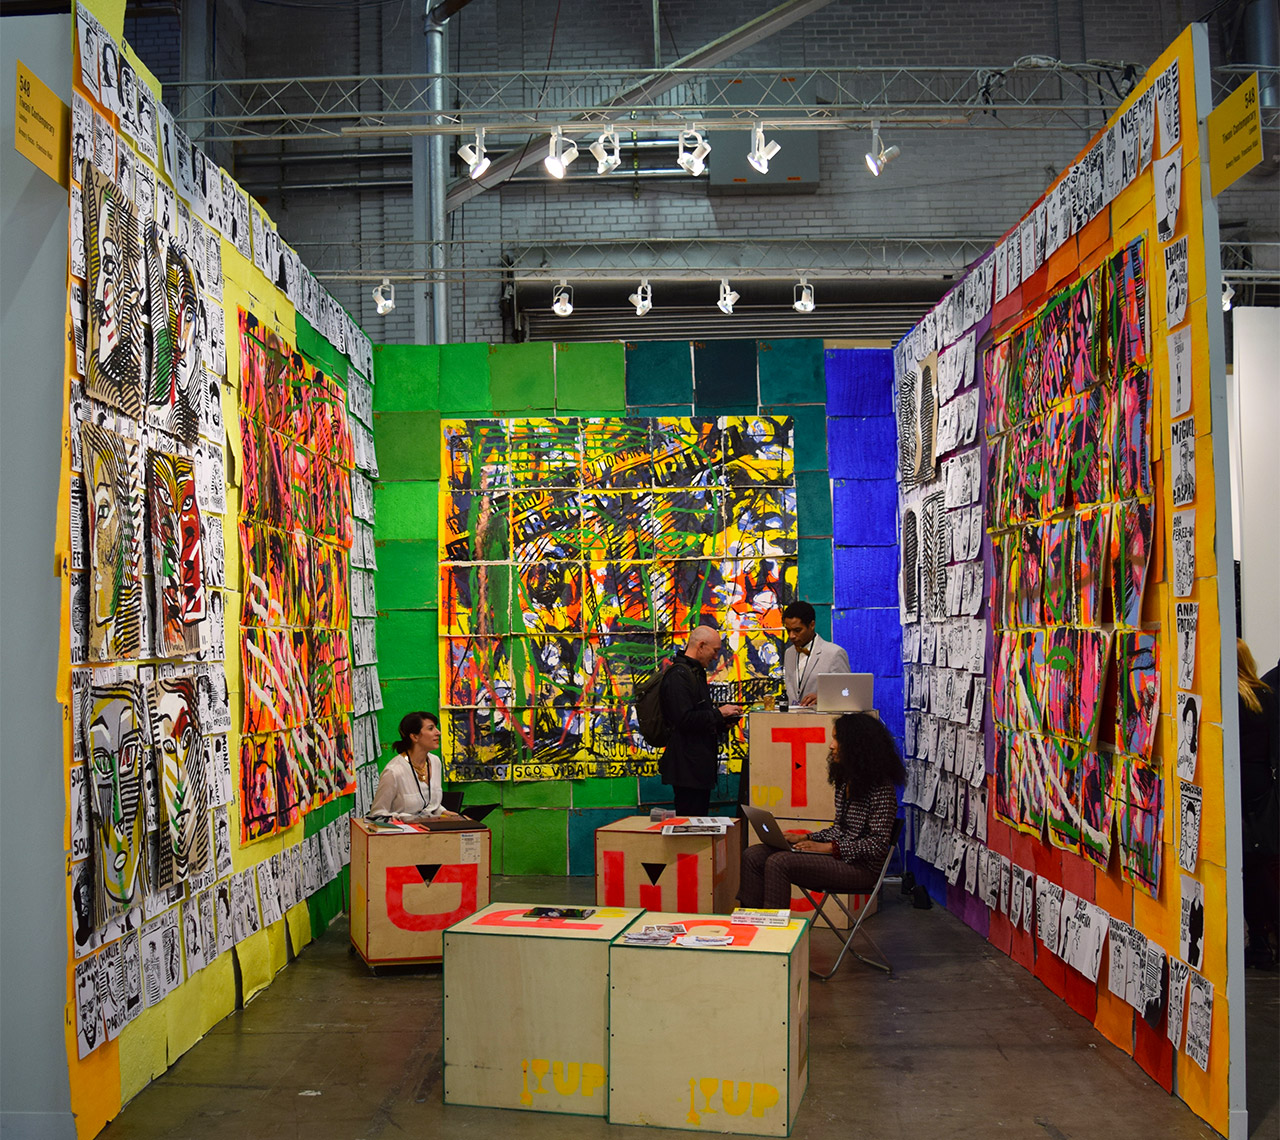 Francisco Vidal's installation in the Tiwani Contemporary booth at the 2016 Armory Show